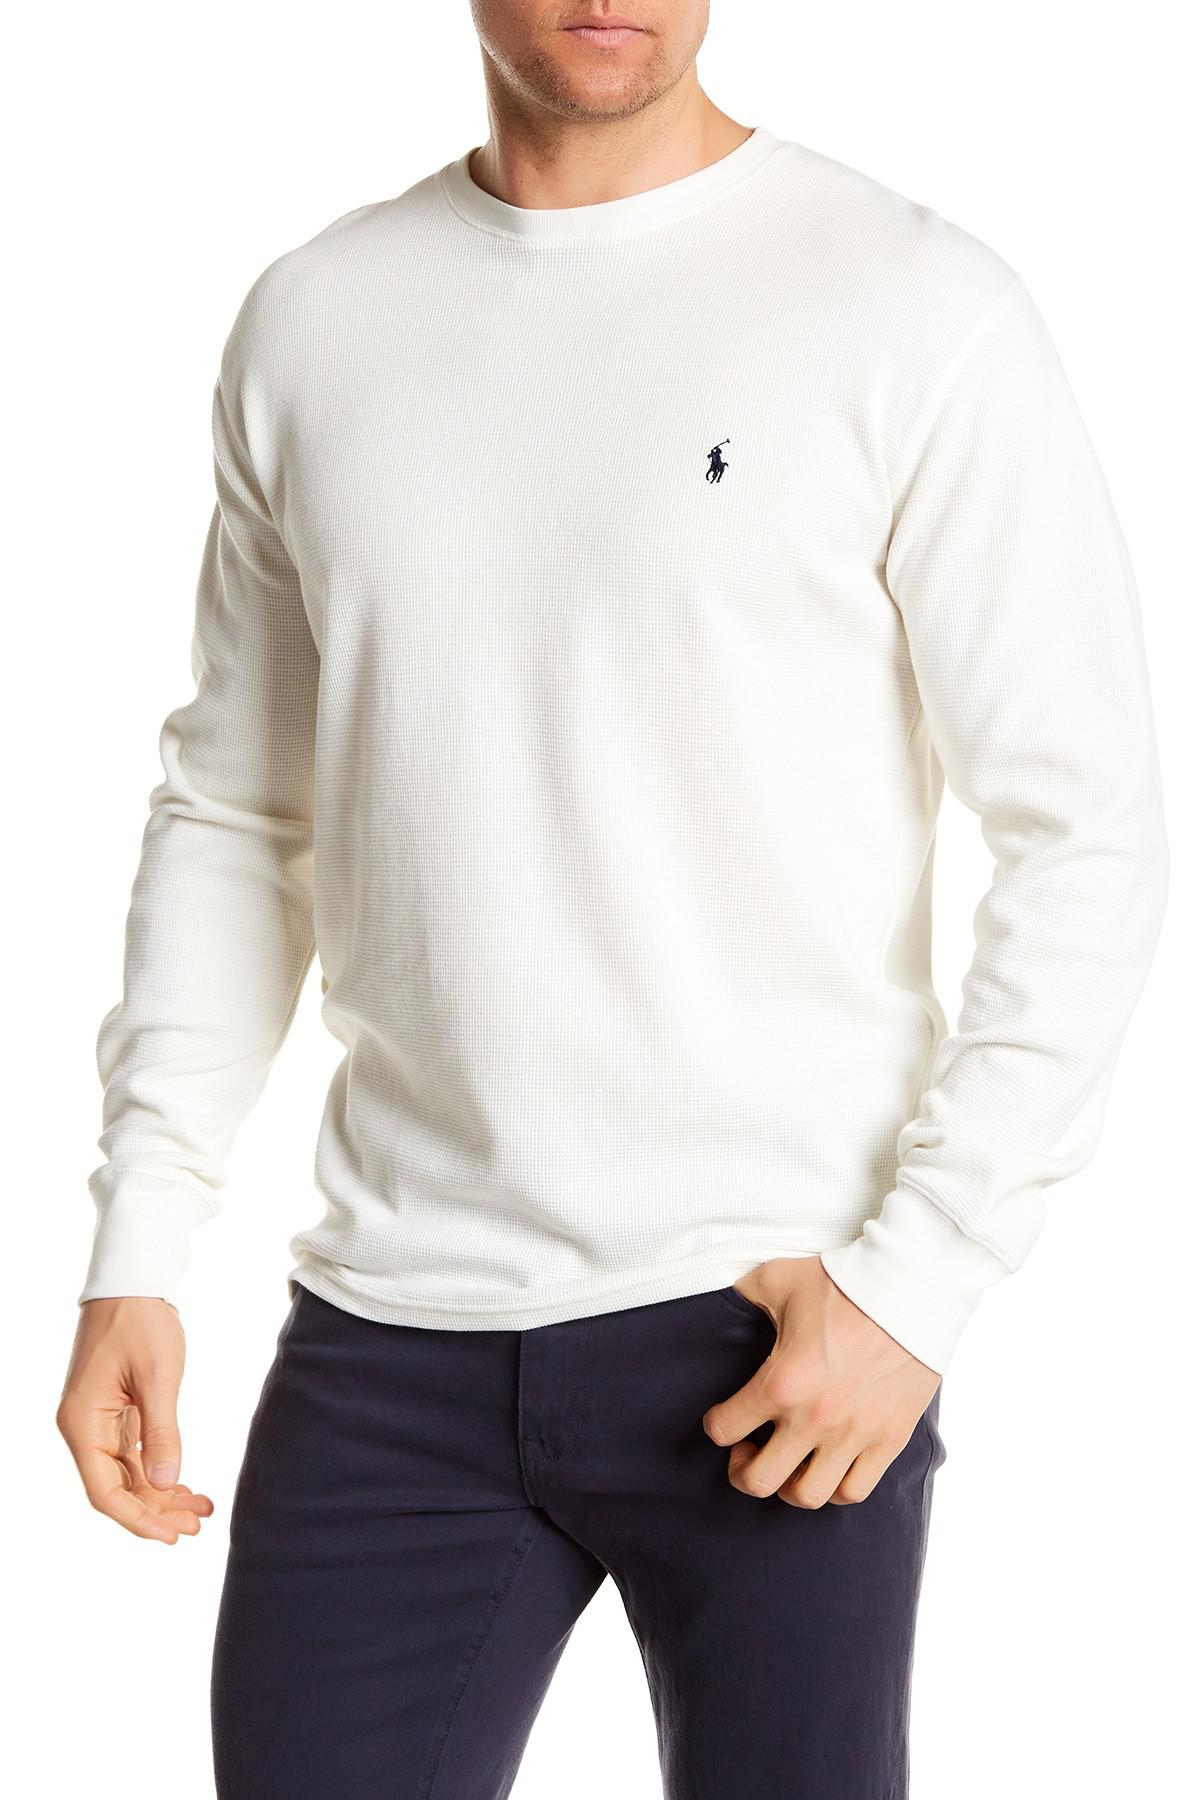 db798457 Polo Ralph Lauren Waffle Knit Long Sleeve Crew Neck Tee in White for ...